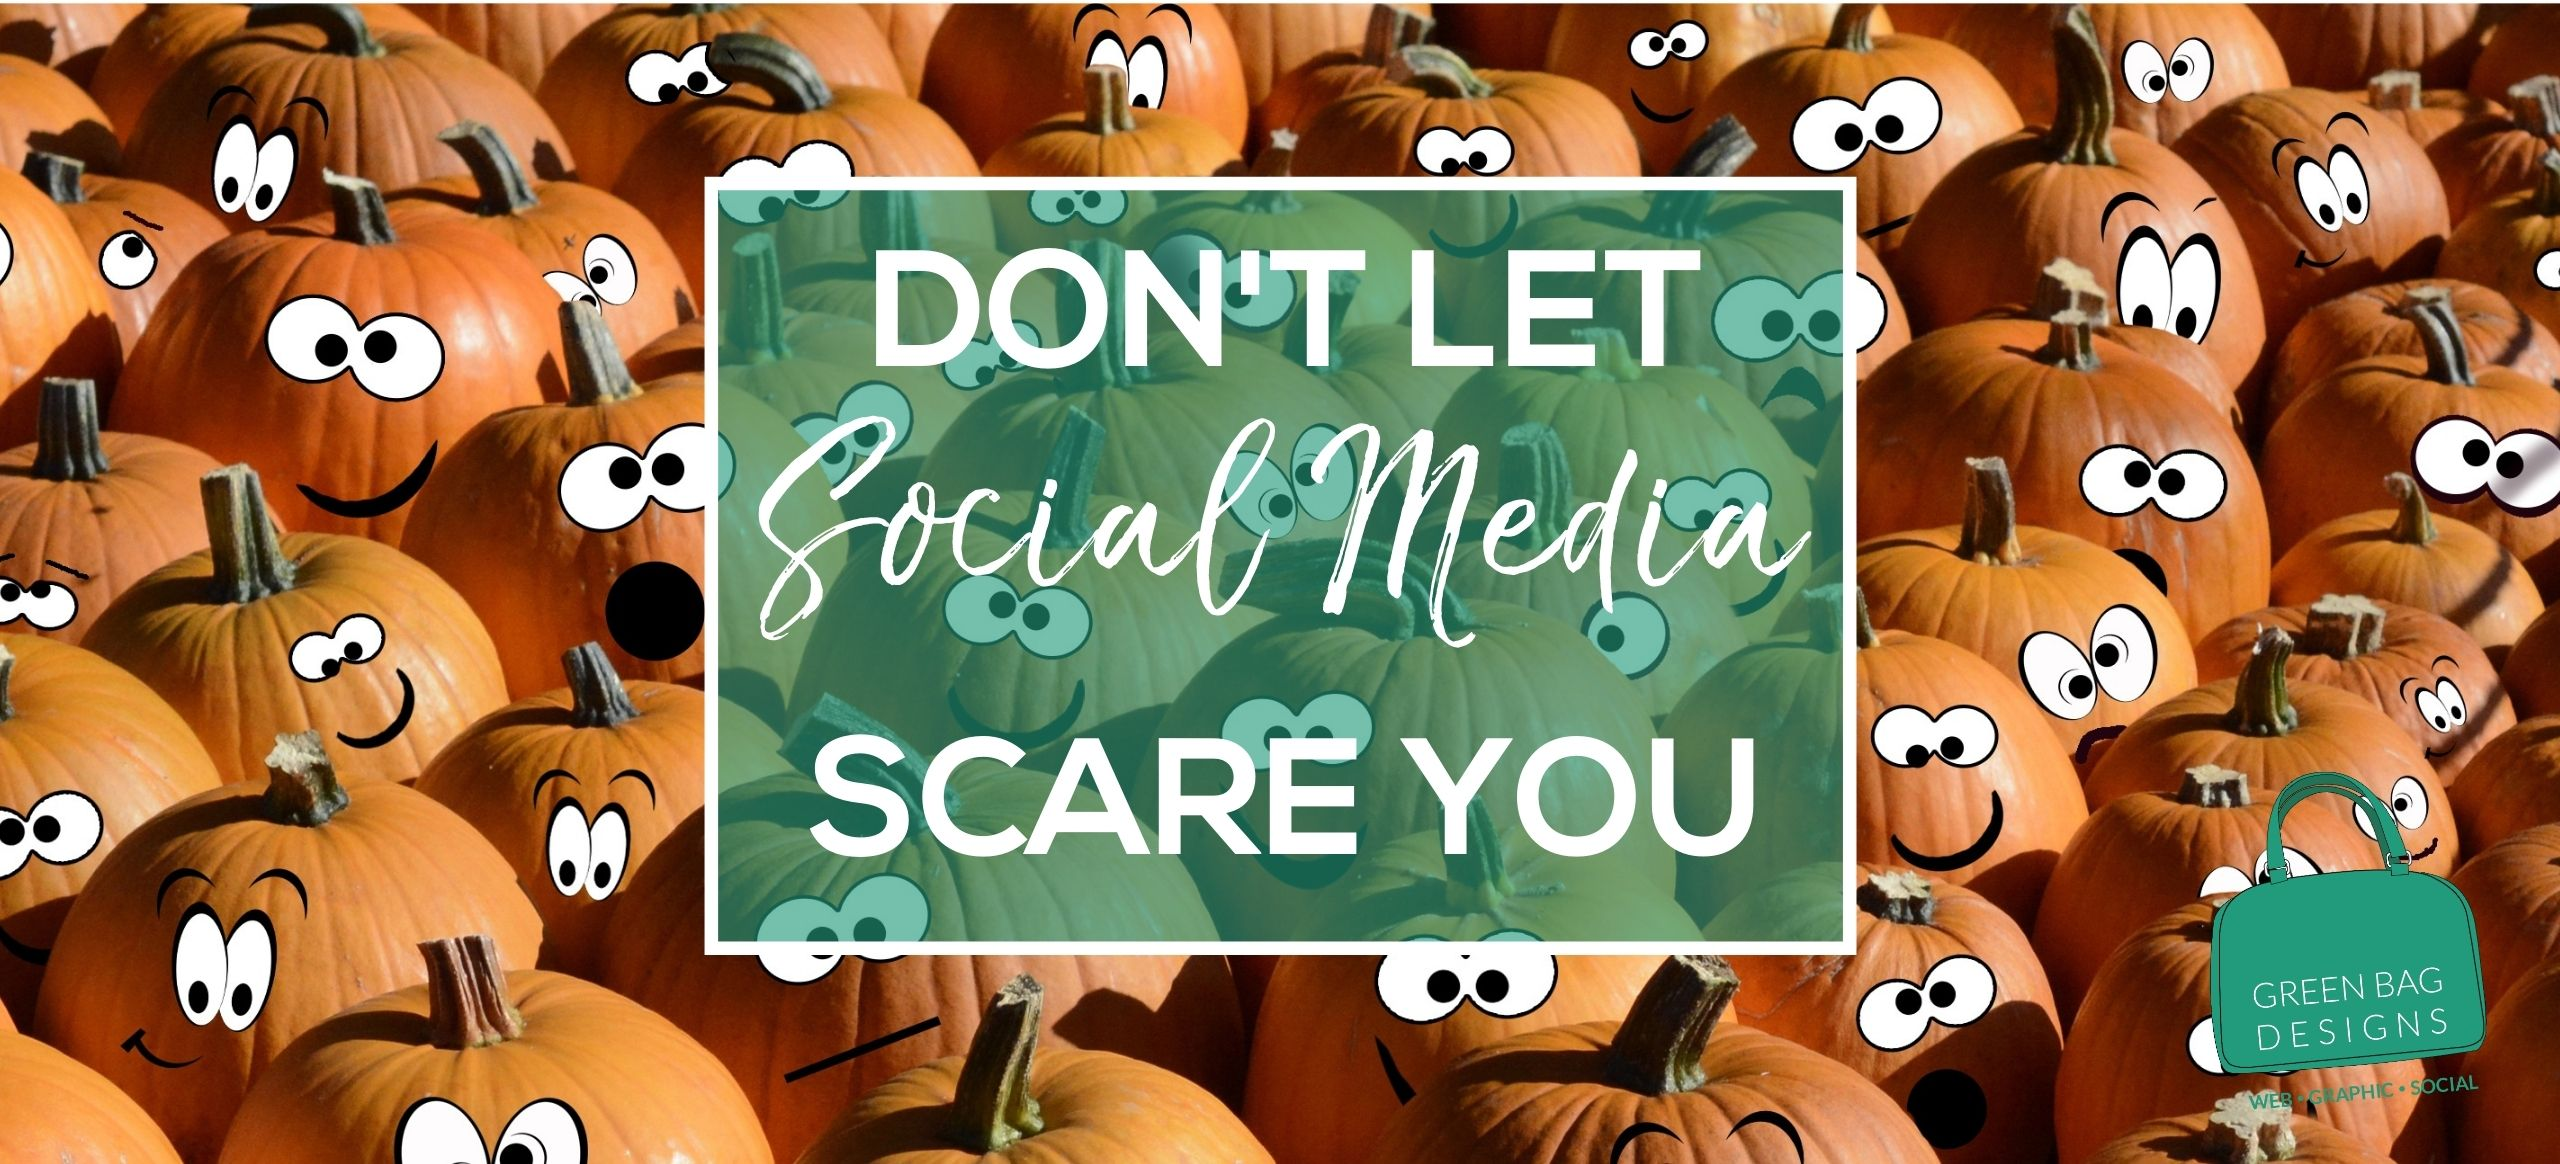 Don't Let Social Media Scare You in White Letters in Green Box Overlaying a Picture of Pumpkins with Silly Eyeballs